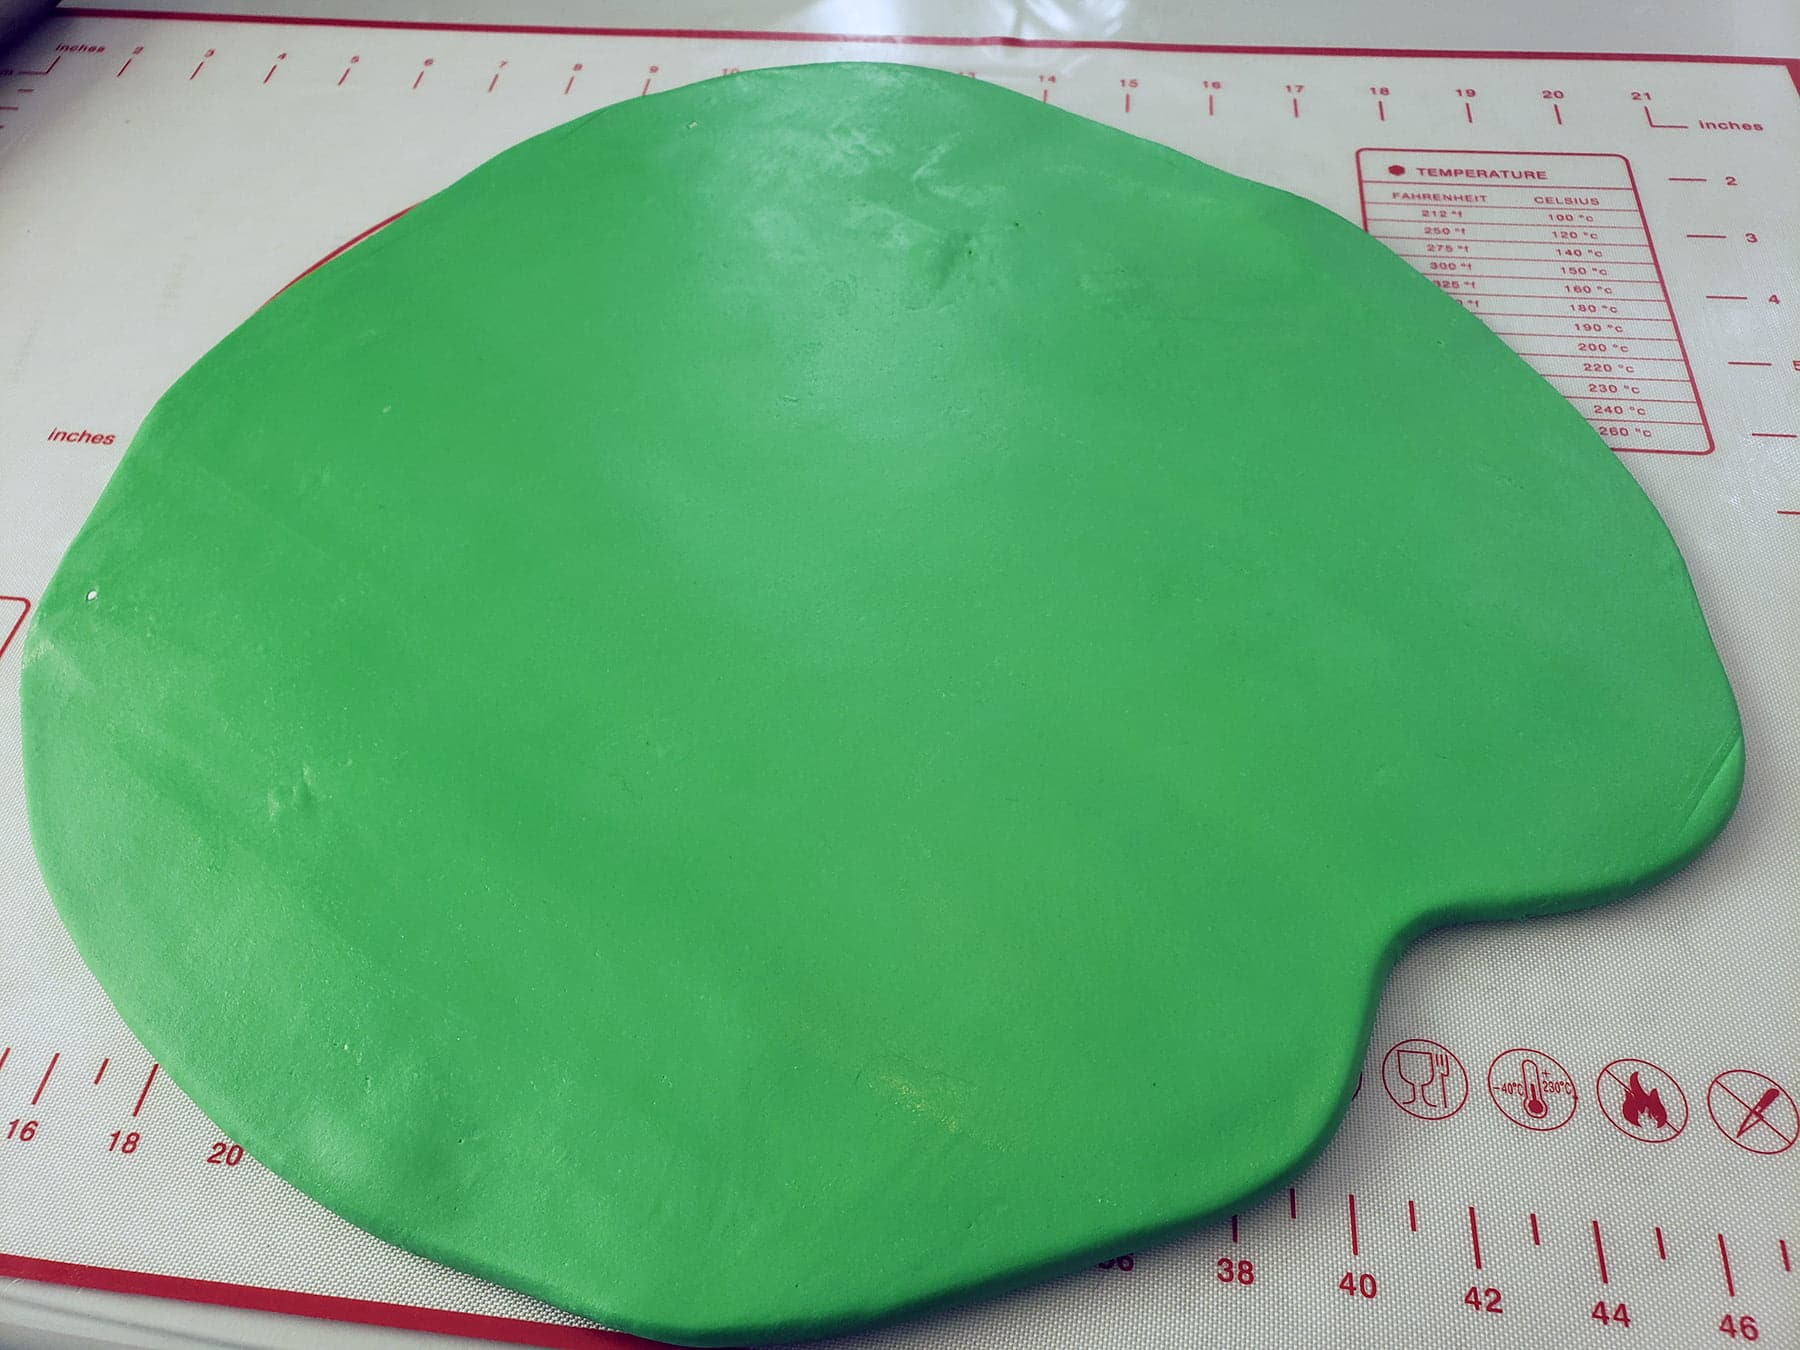 A mass of bright green fondant has been rolled out in a rough oblong shape.